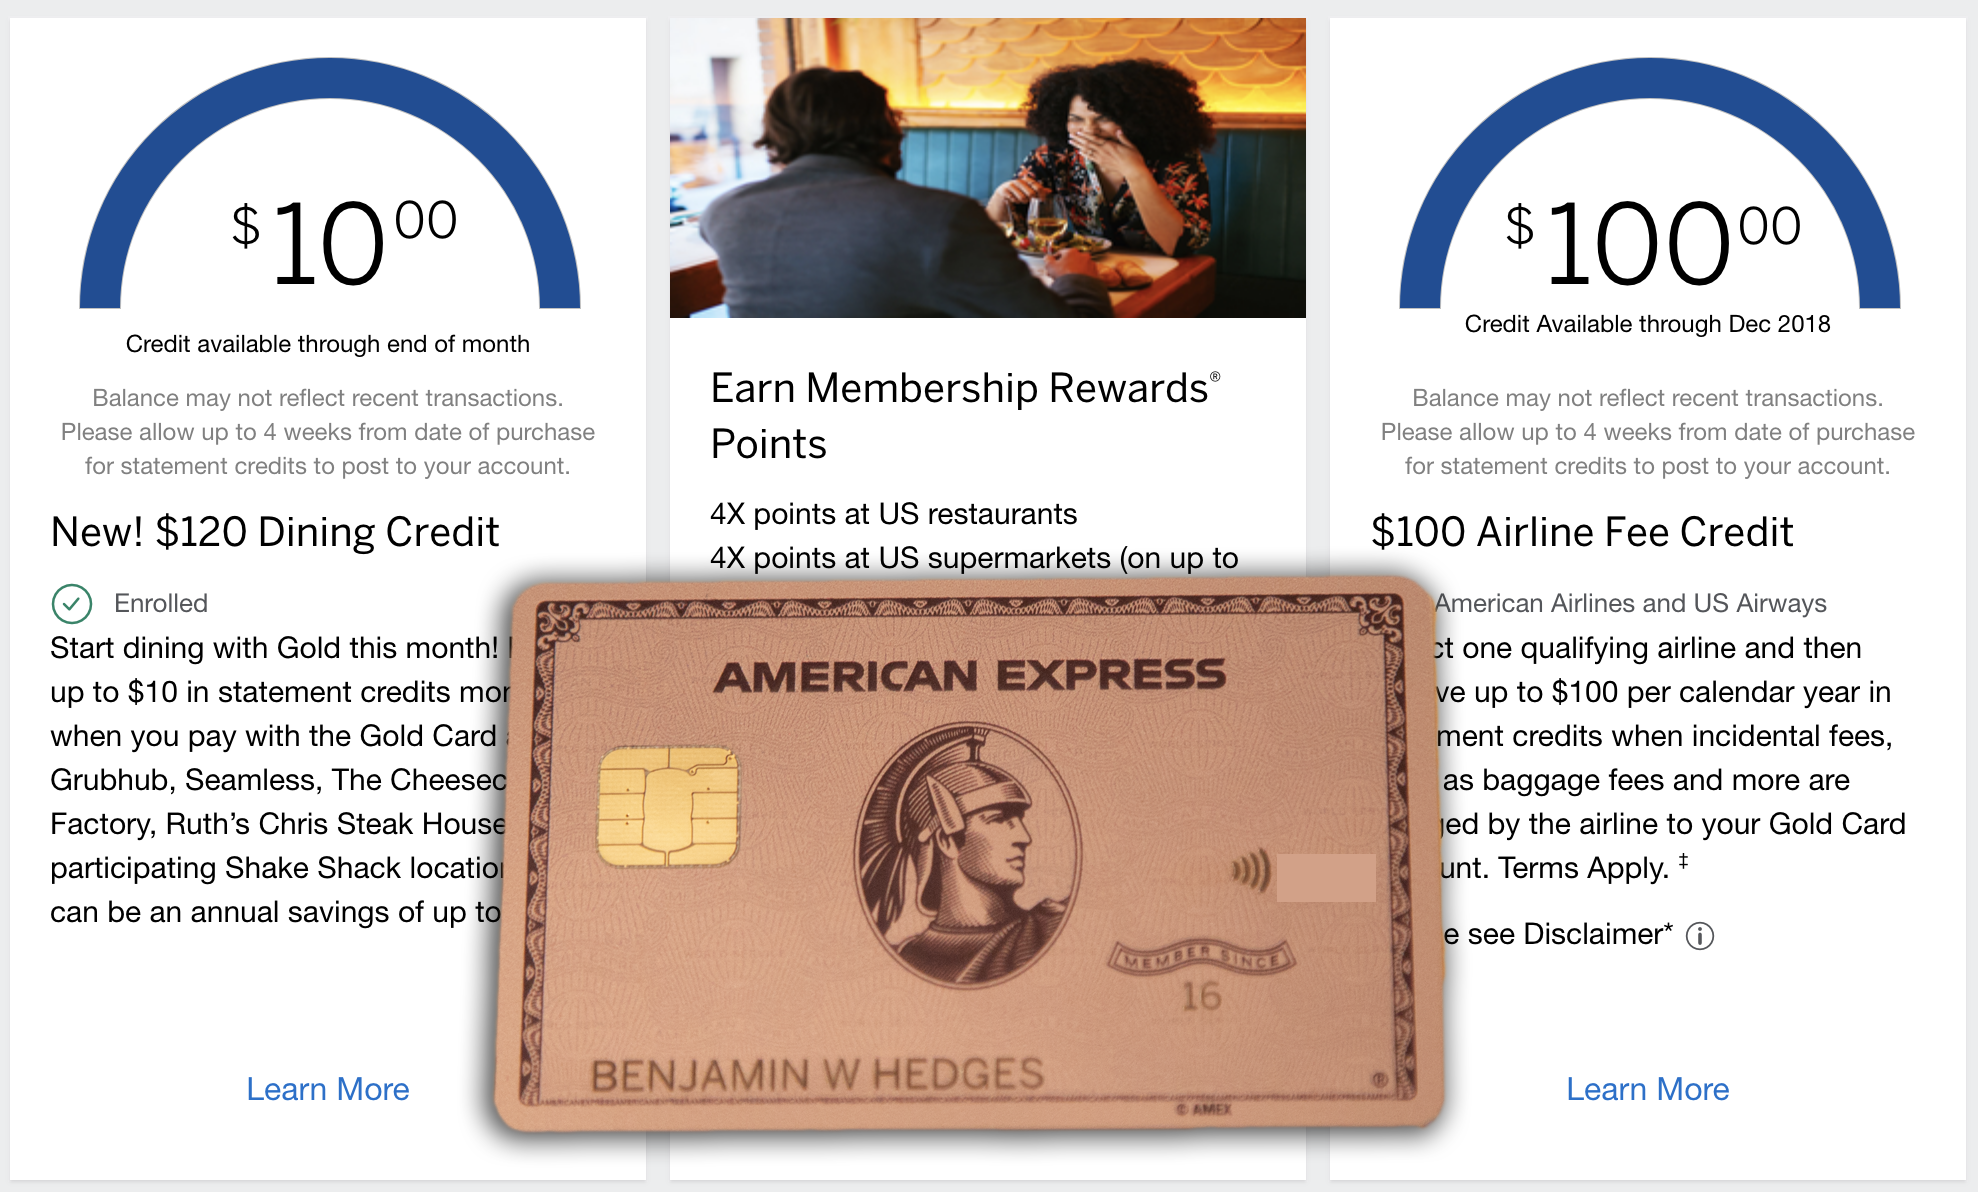 15 Things to do once you get the Amex Gold Card - The Credit Shifu